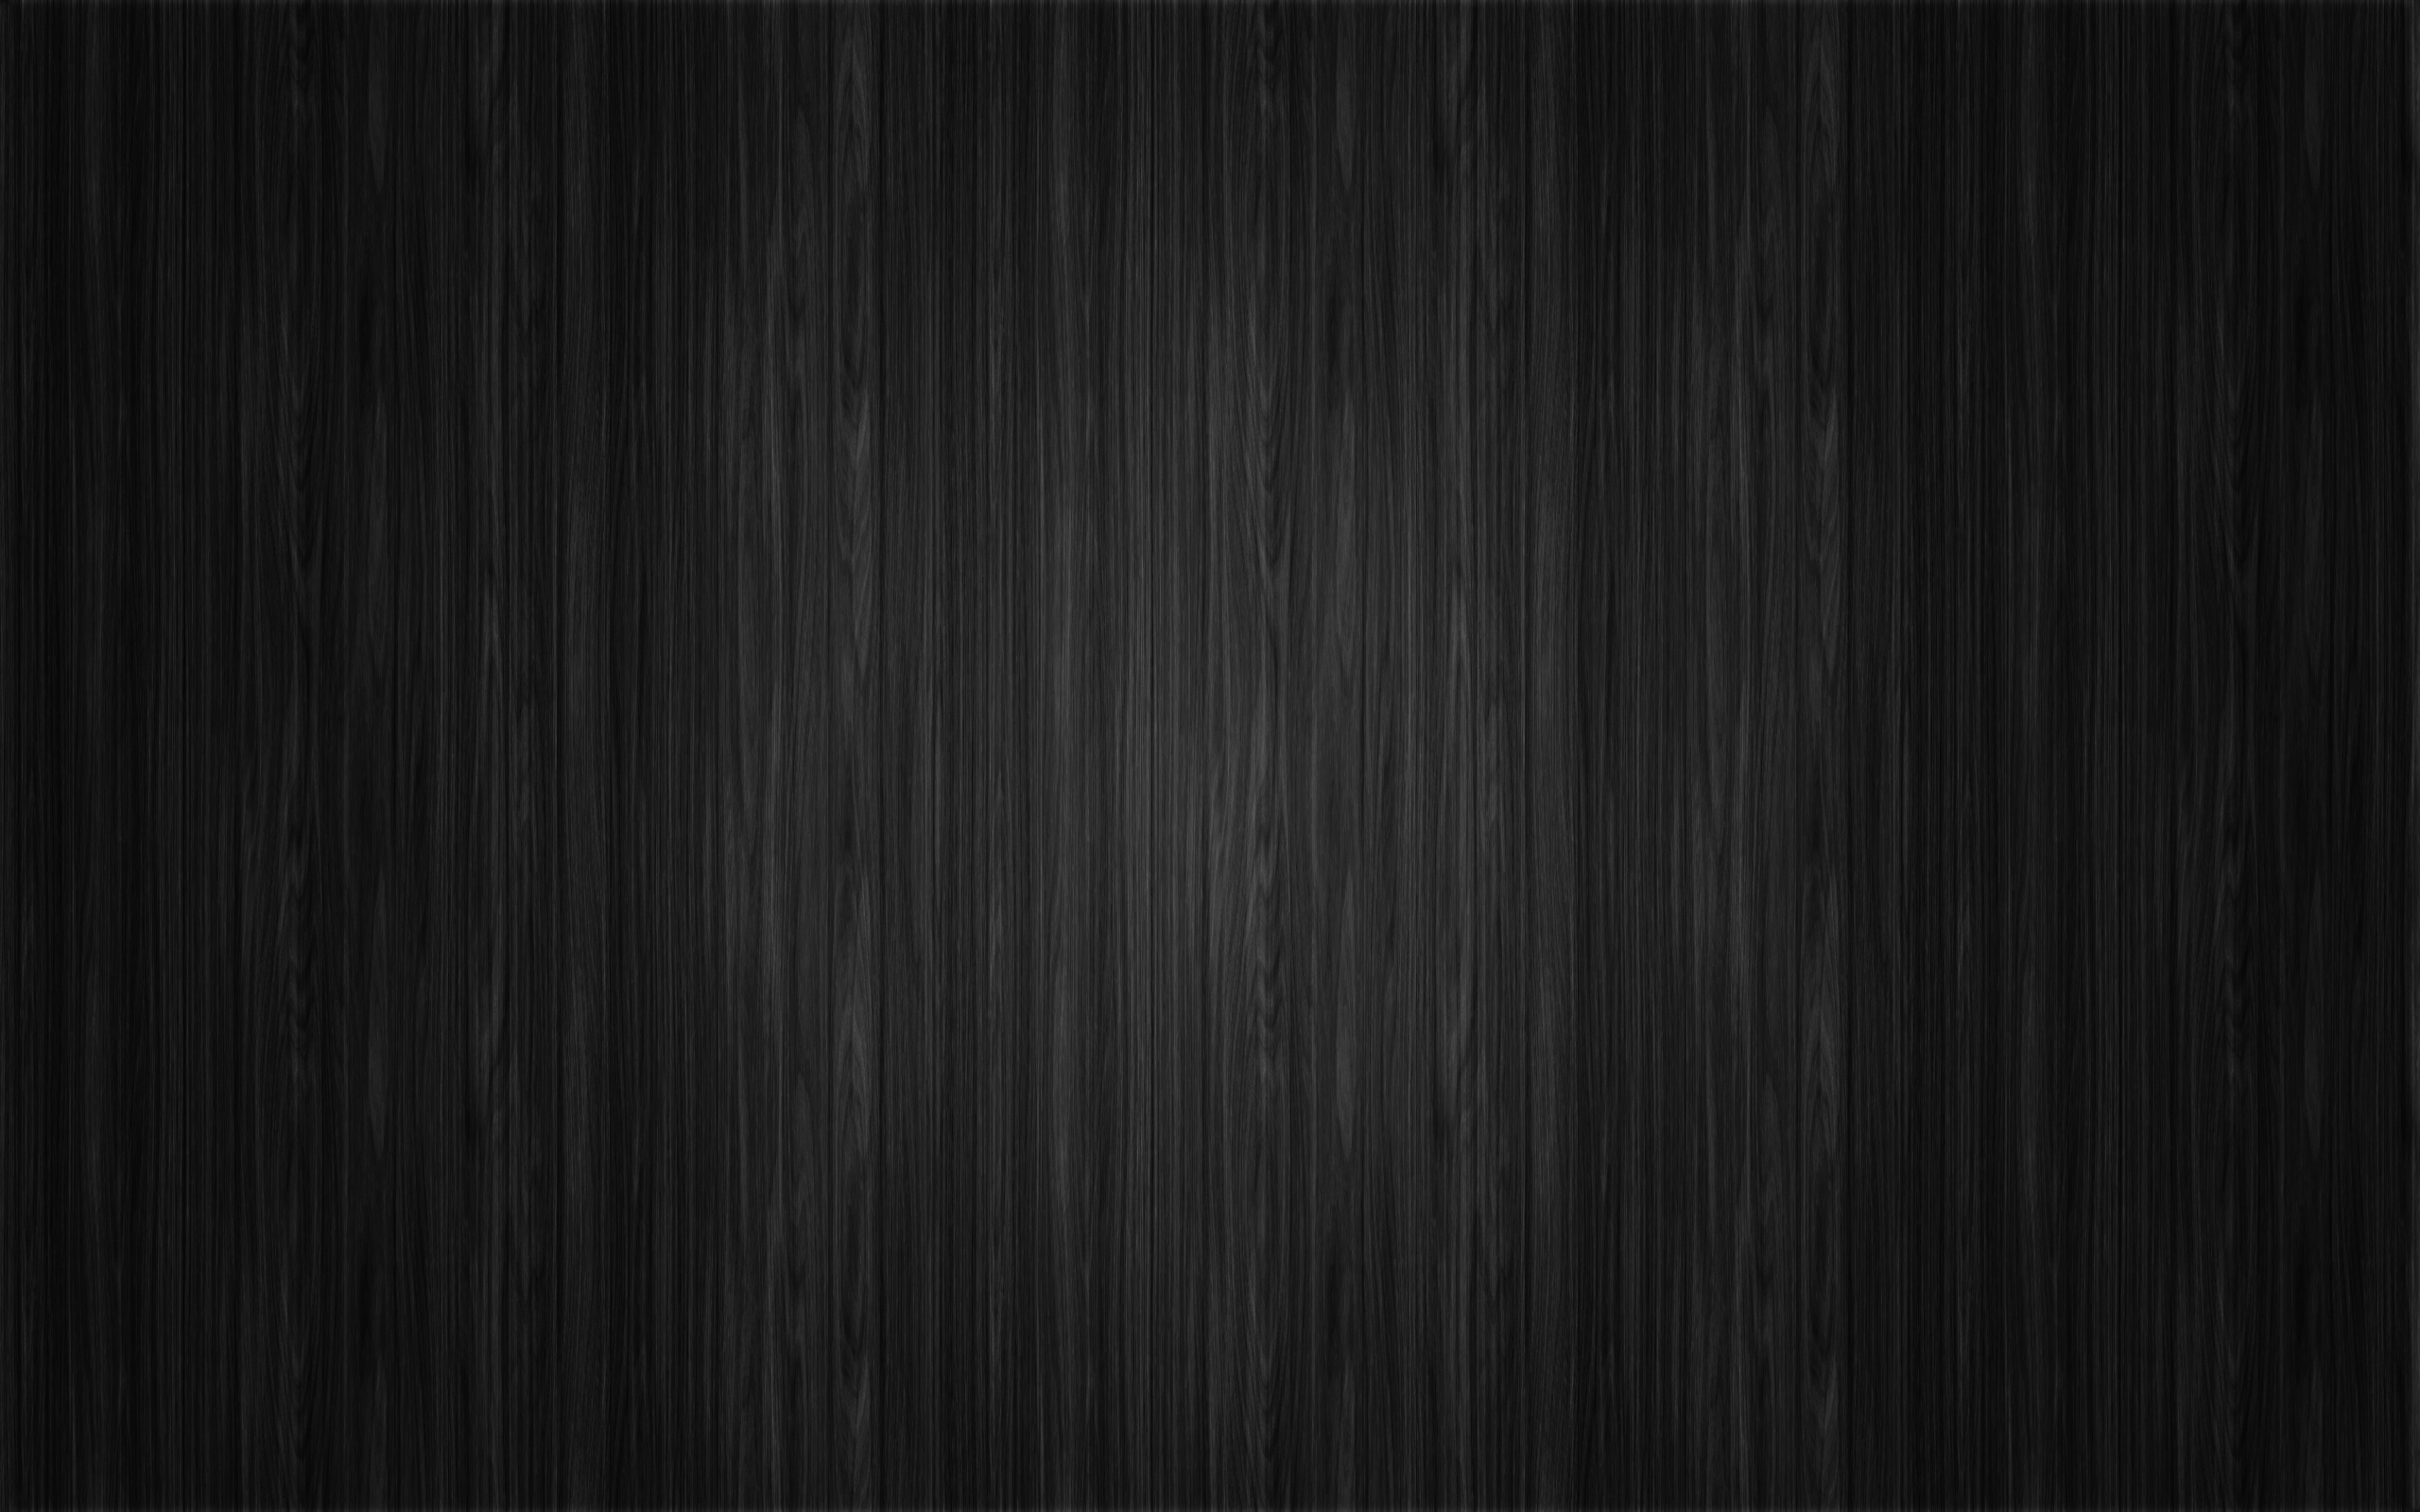 Black 3d Wallpaper 128 HD Wallpaper 3D Desktop Backgrounds 2560x1600